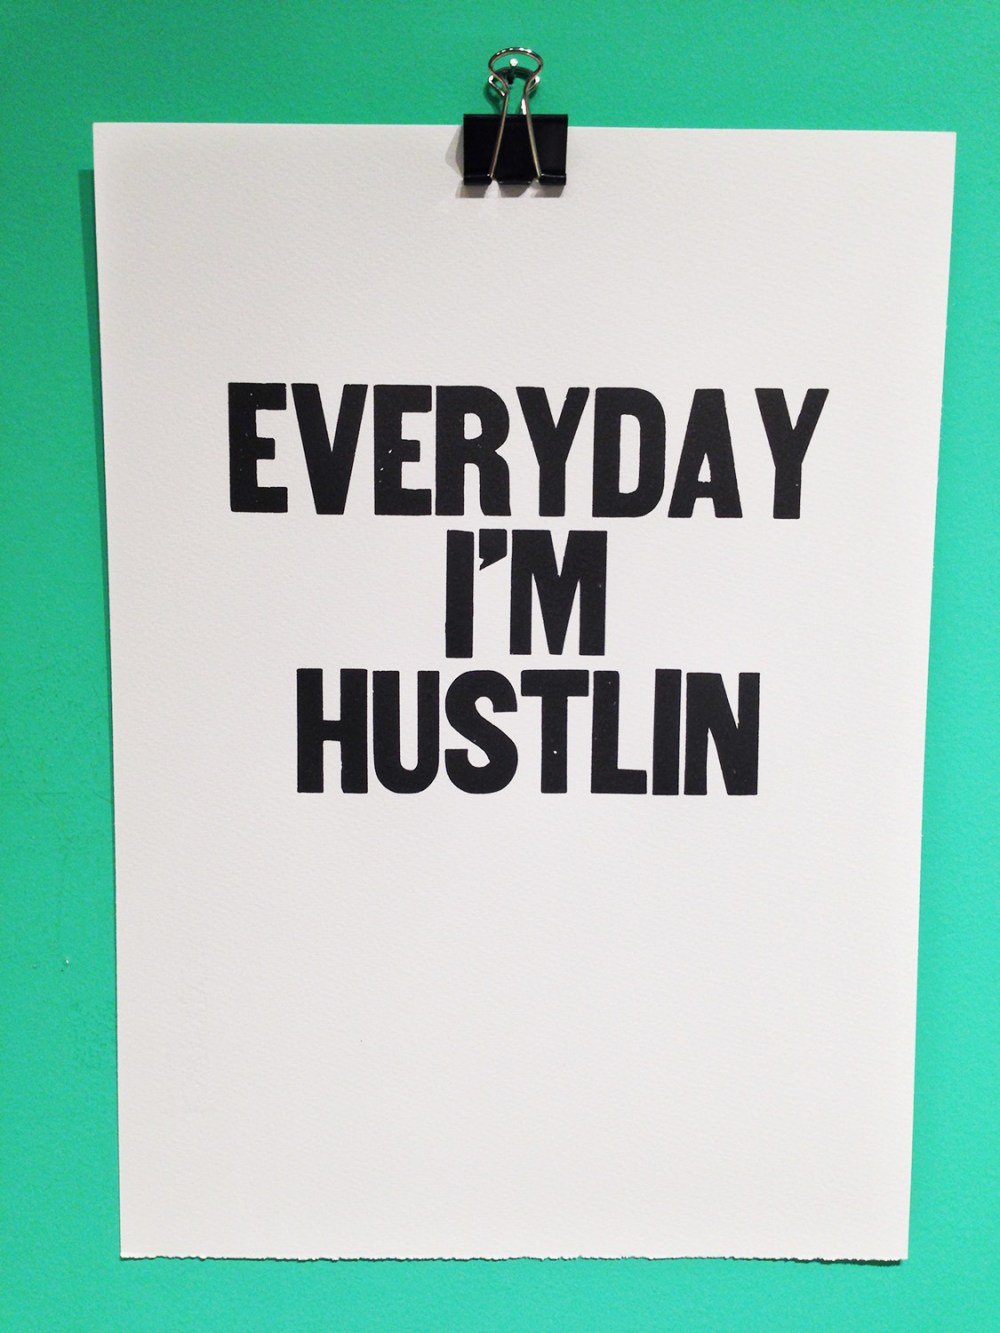 every-day-hustling